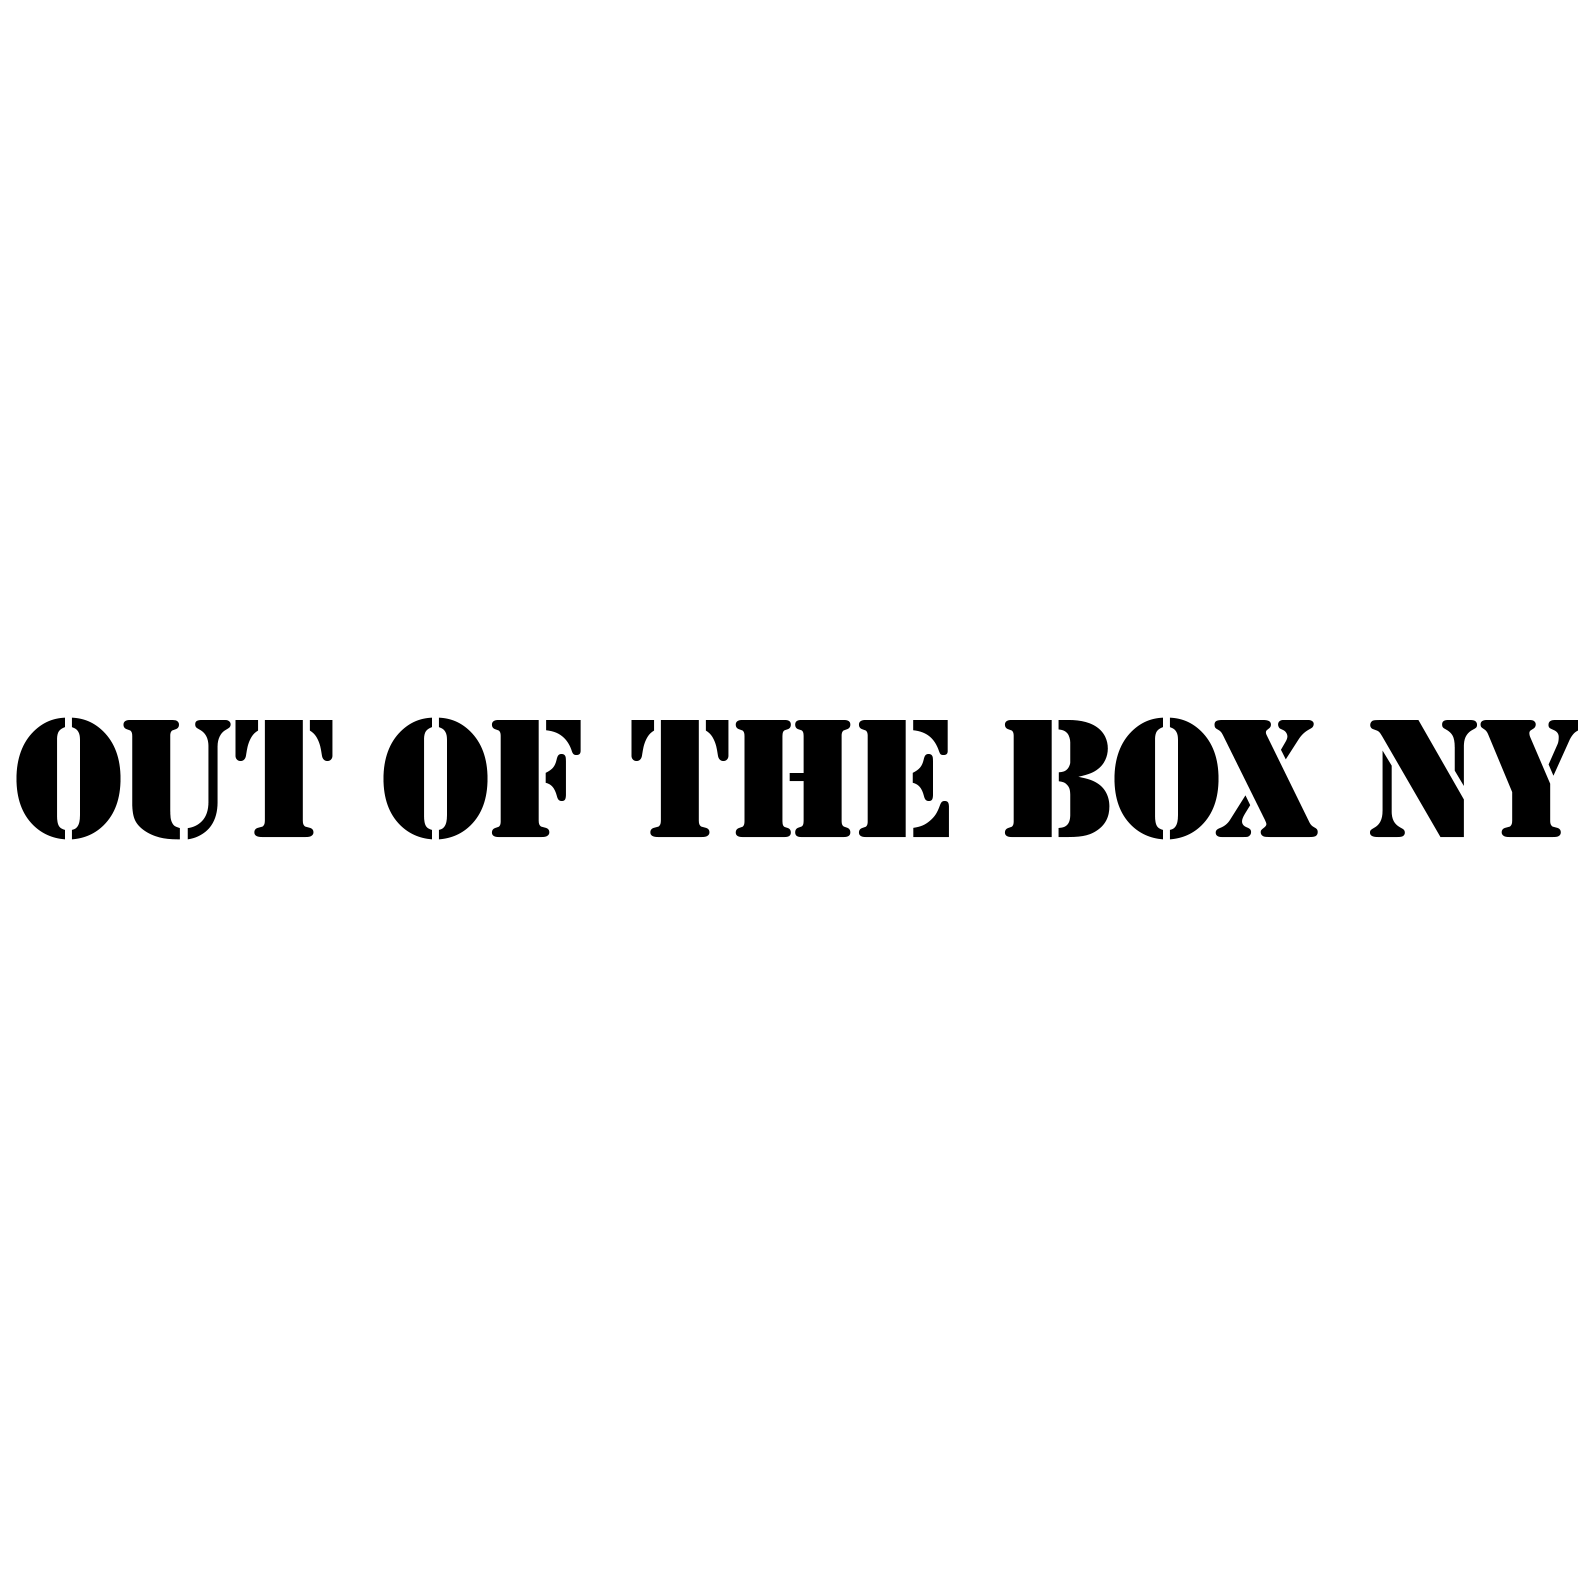 Out of the Box NY